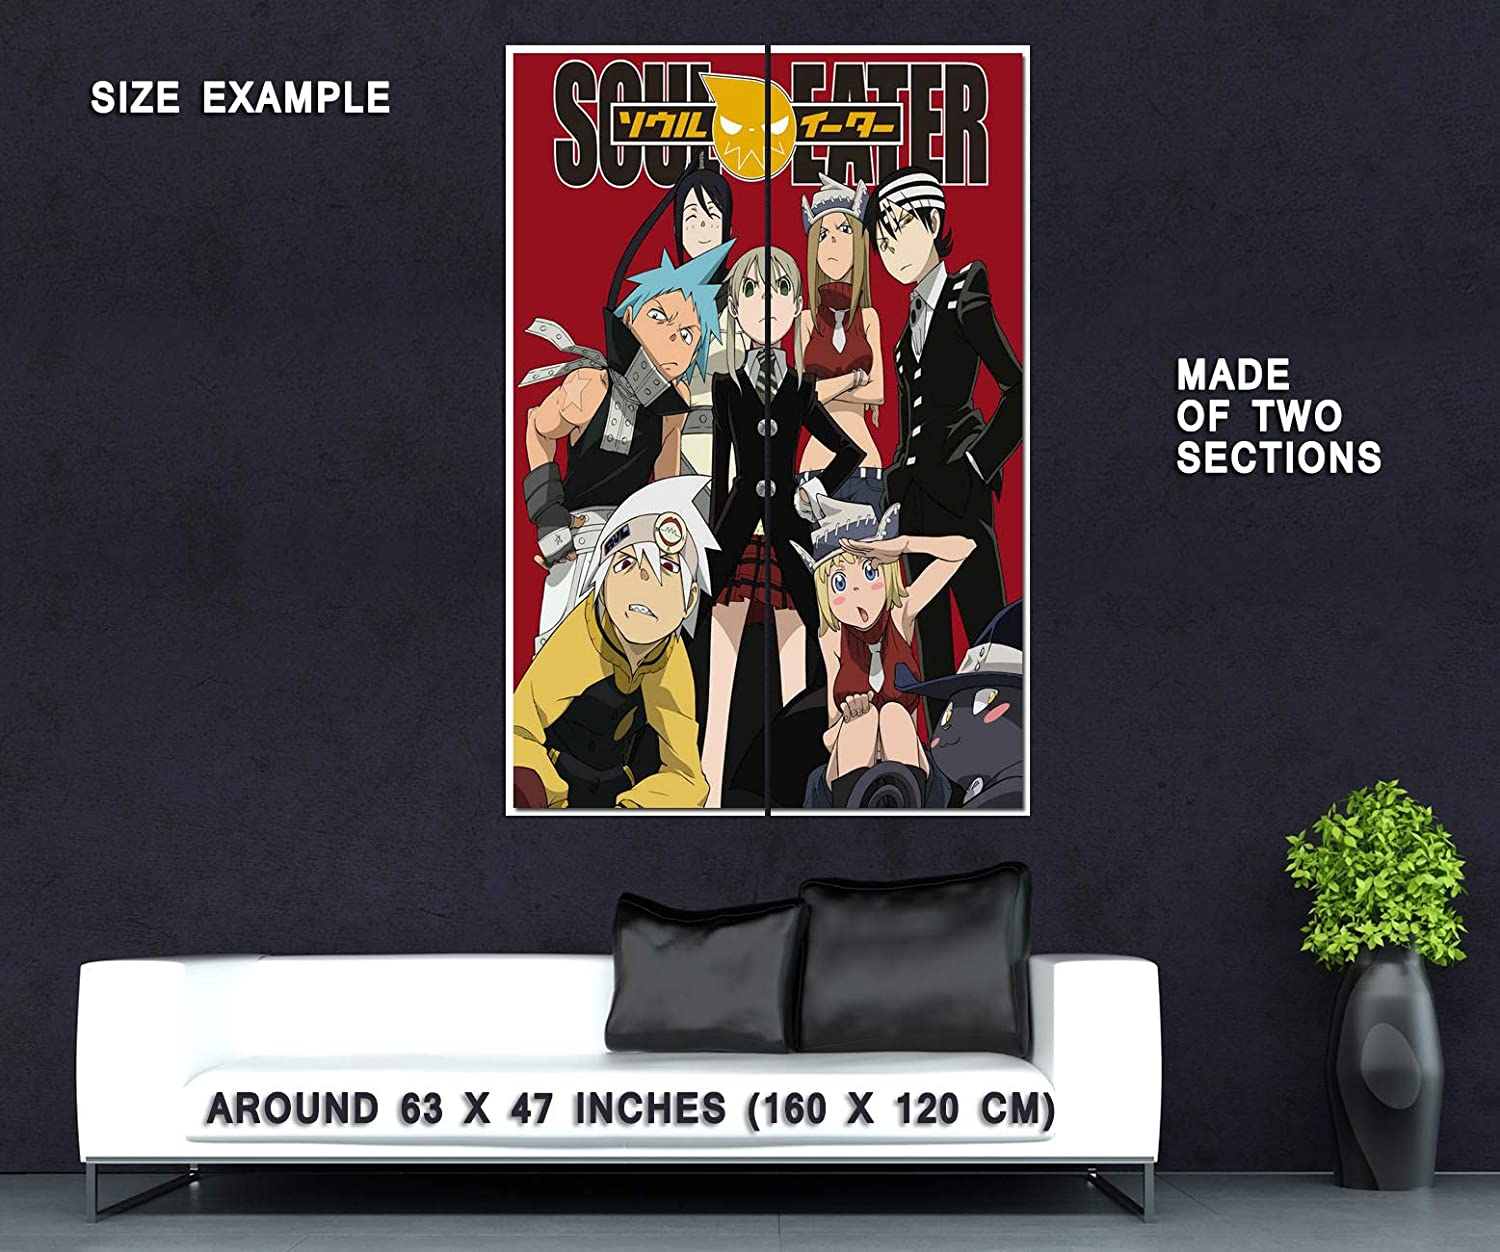 Amazon.com: 80518 Soul Eater Anime Manga Decor Wall 36x24 ...